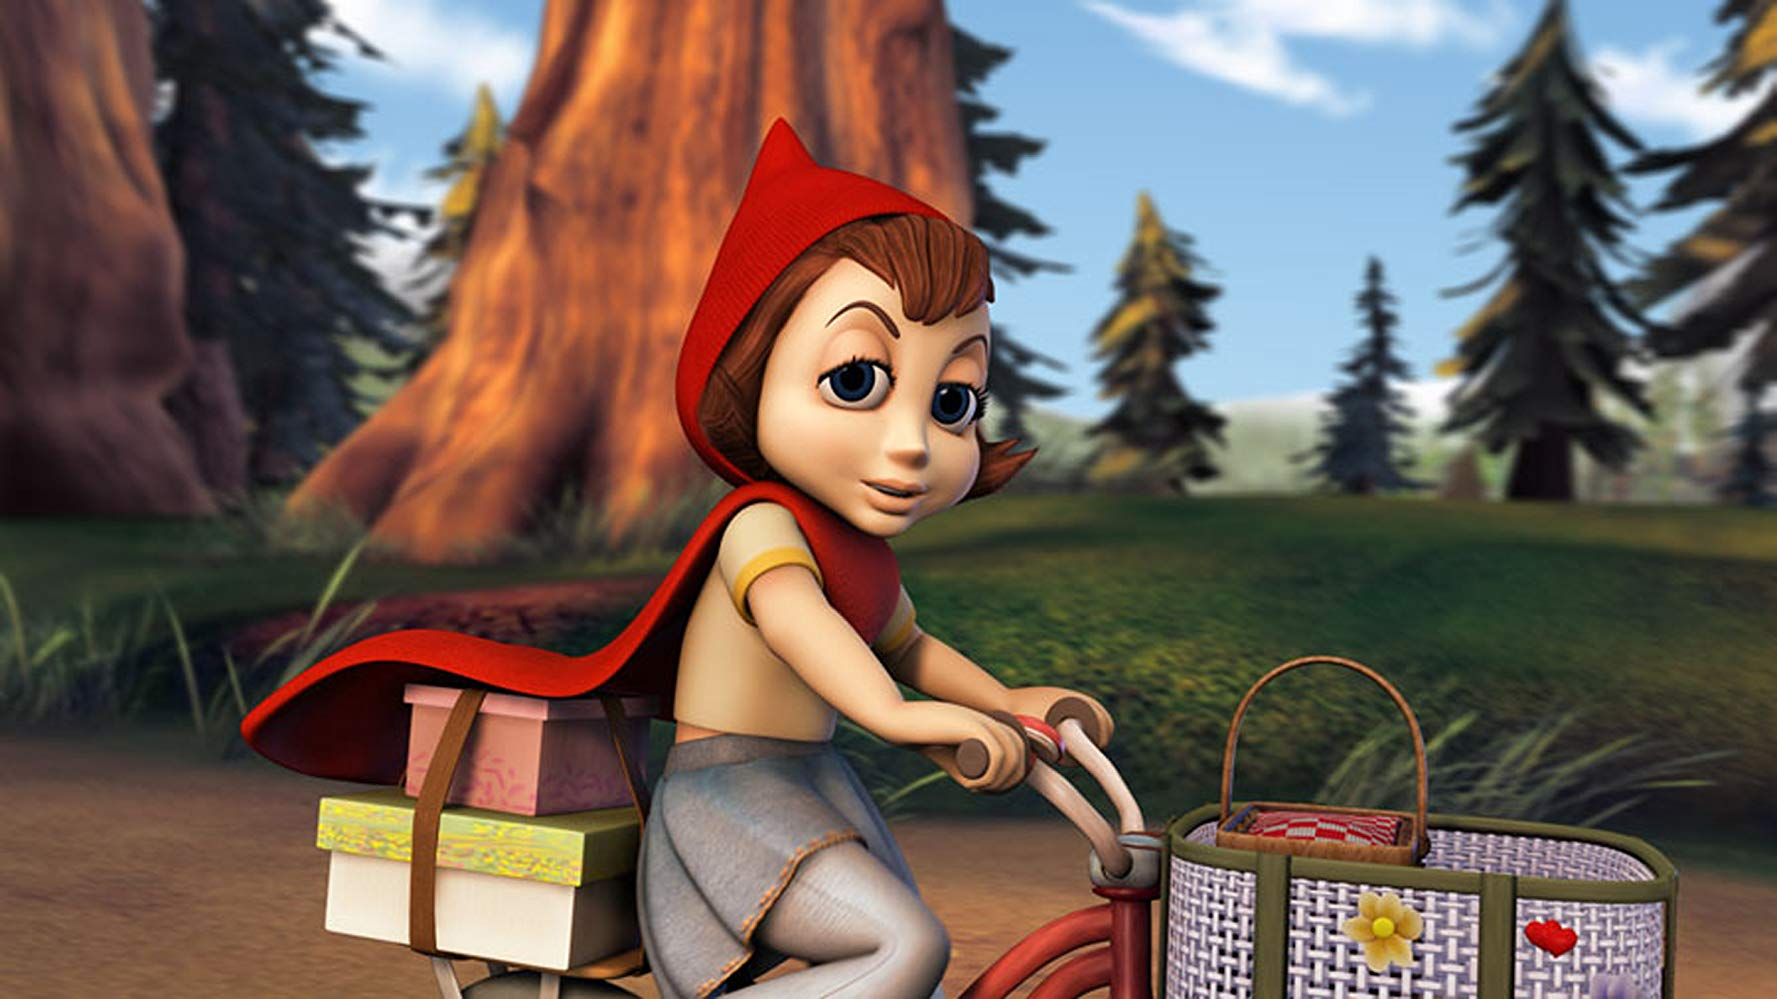 A modernised version of Little Red Riding Hood (voiced by Anne Hathaway) in Hoodwinked! (2005)